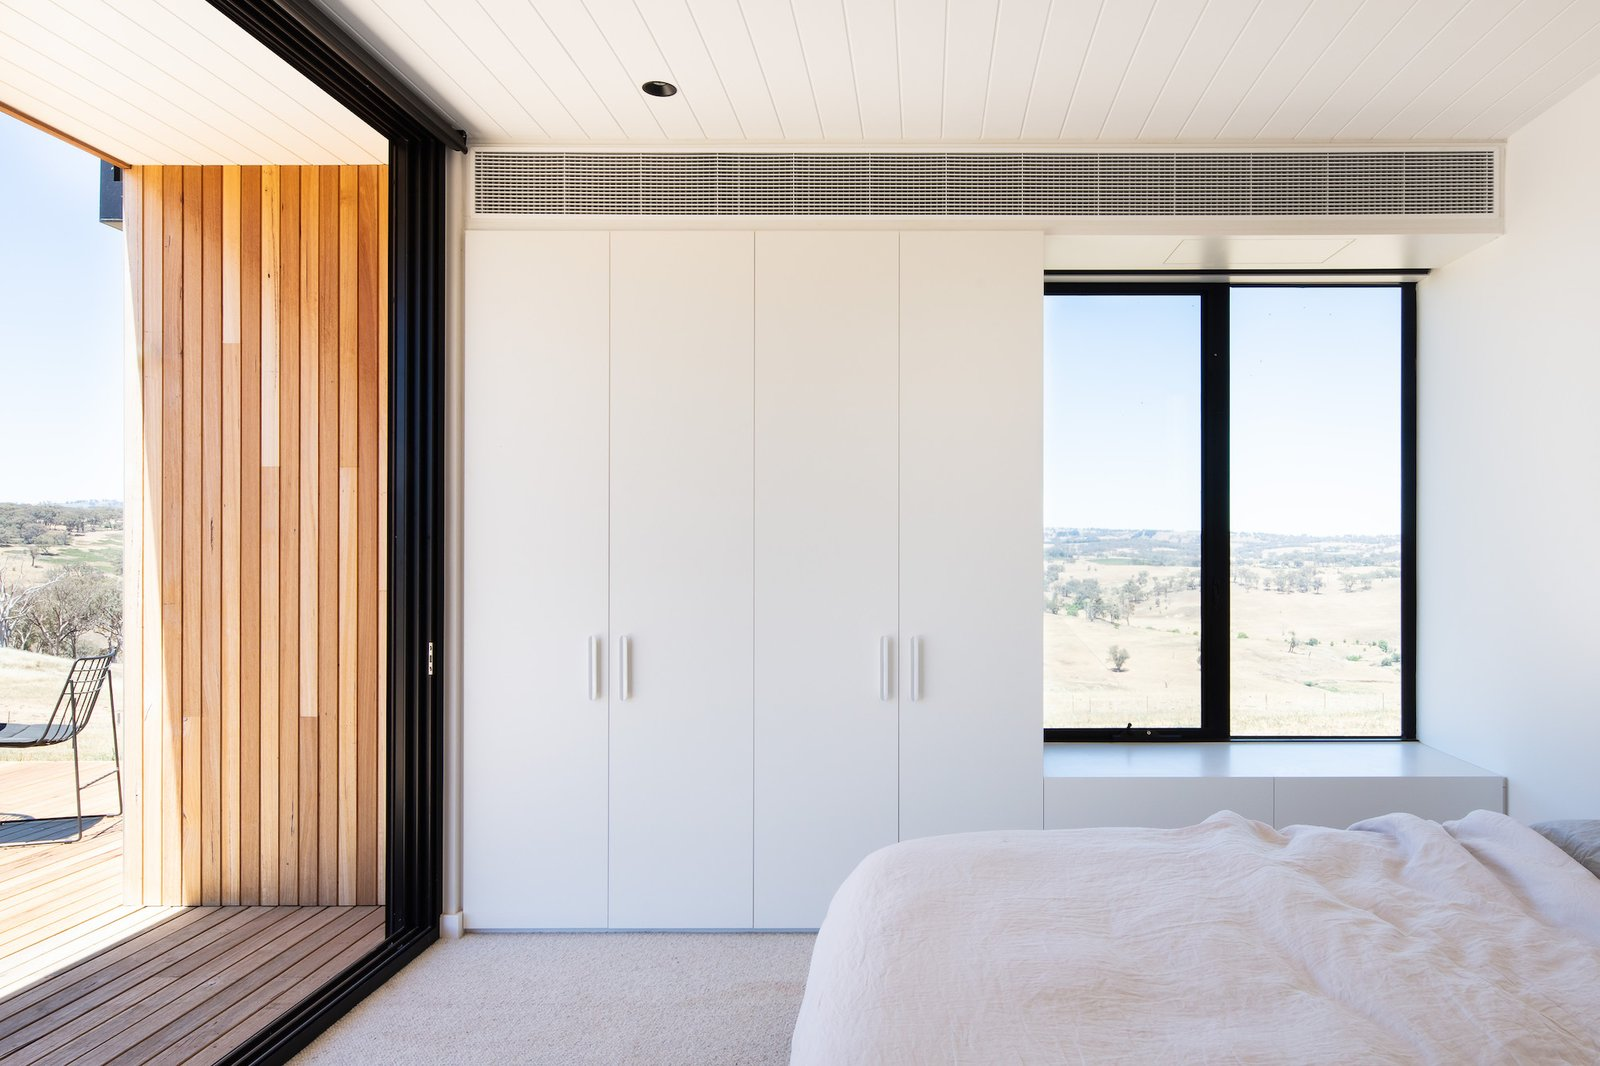 Bedroom at Kangaroobie by Modscape.